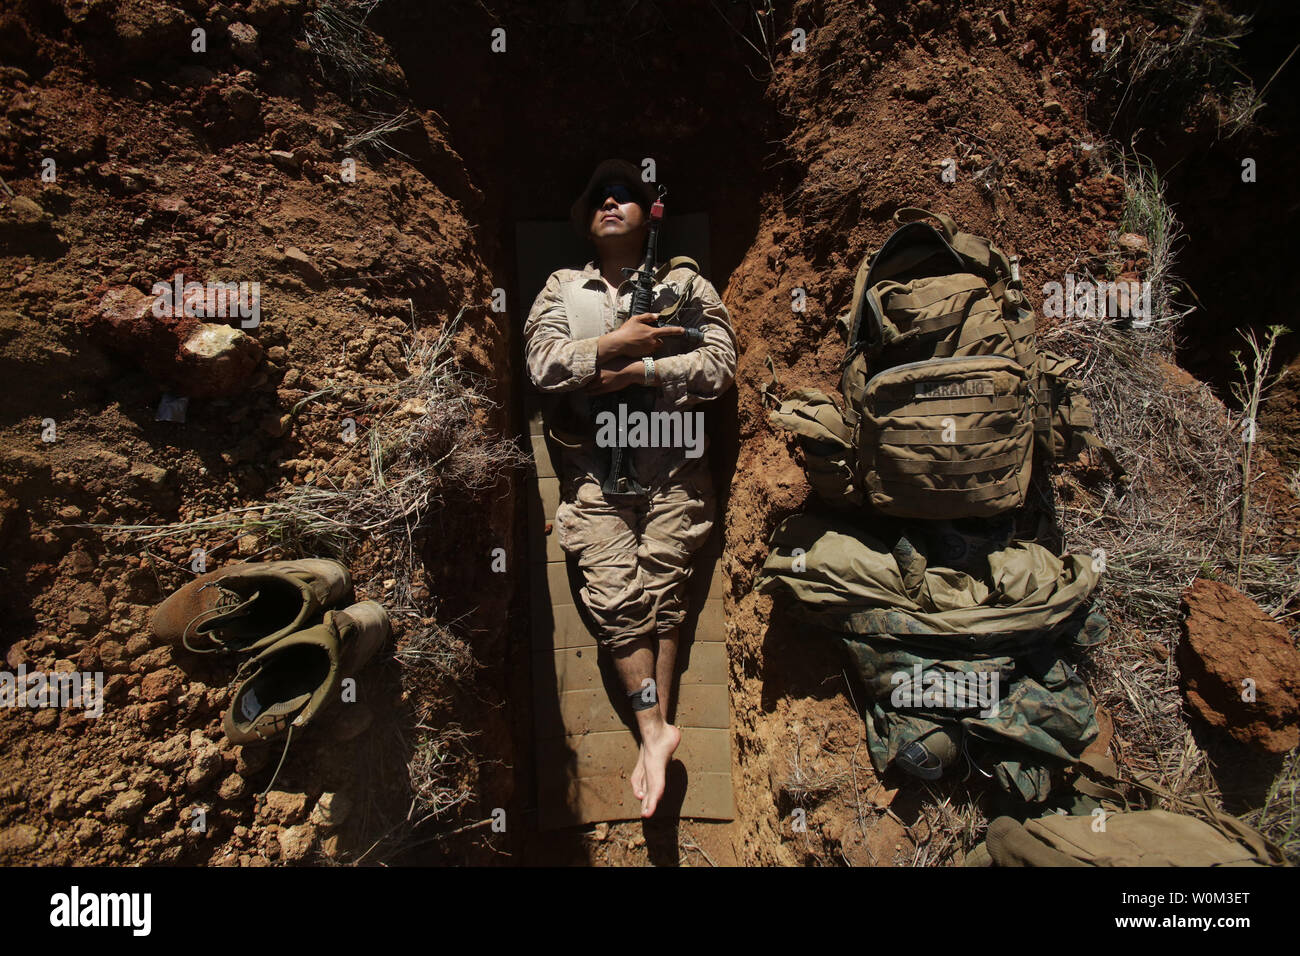 Lance Cpl. Andrew Naranjo, a rifleman with 2nd platoon, Company L, 3rd Battalion, 4th Marine Regiment, 1st Marine Division, Marine Rotational Force Darwin, lies in his fighting hole during Exercise Brolga Strike, on June 5th, 2017, in Queensland, Australia. Marines with 3rd Bn., 4th Marines, hiked more than 100 kilometers during the first week of exercise. Marines trained with Australian Defence Forces during the two-week brigade certification exercise. Photo by Cpl. Nathaniel Cray/U.S. Marine Corps/UPI Stock Photo